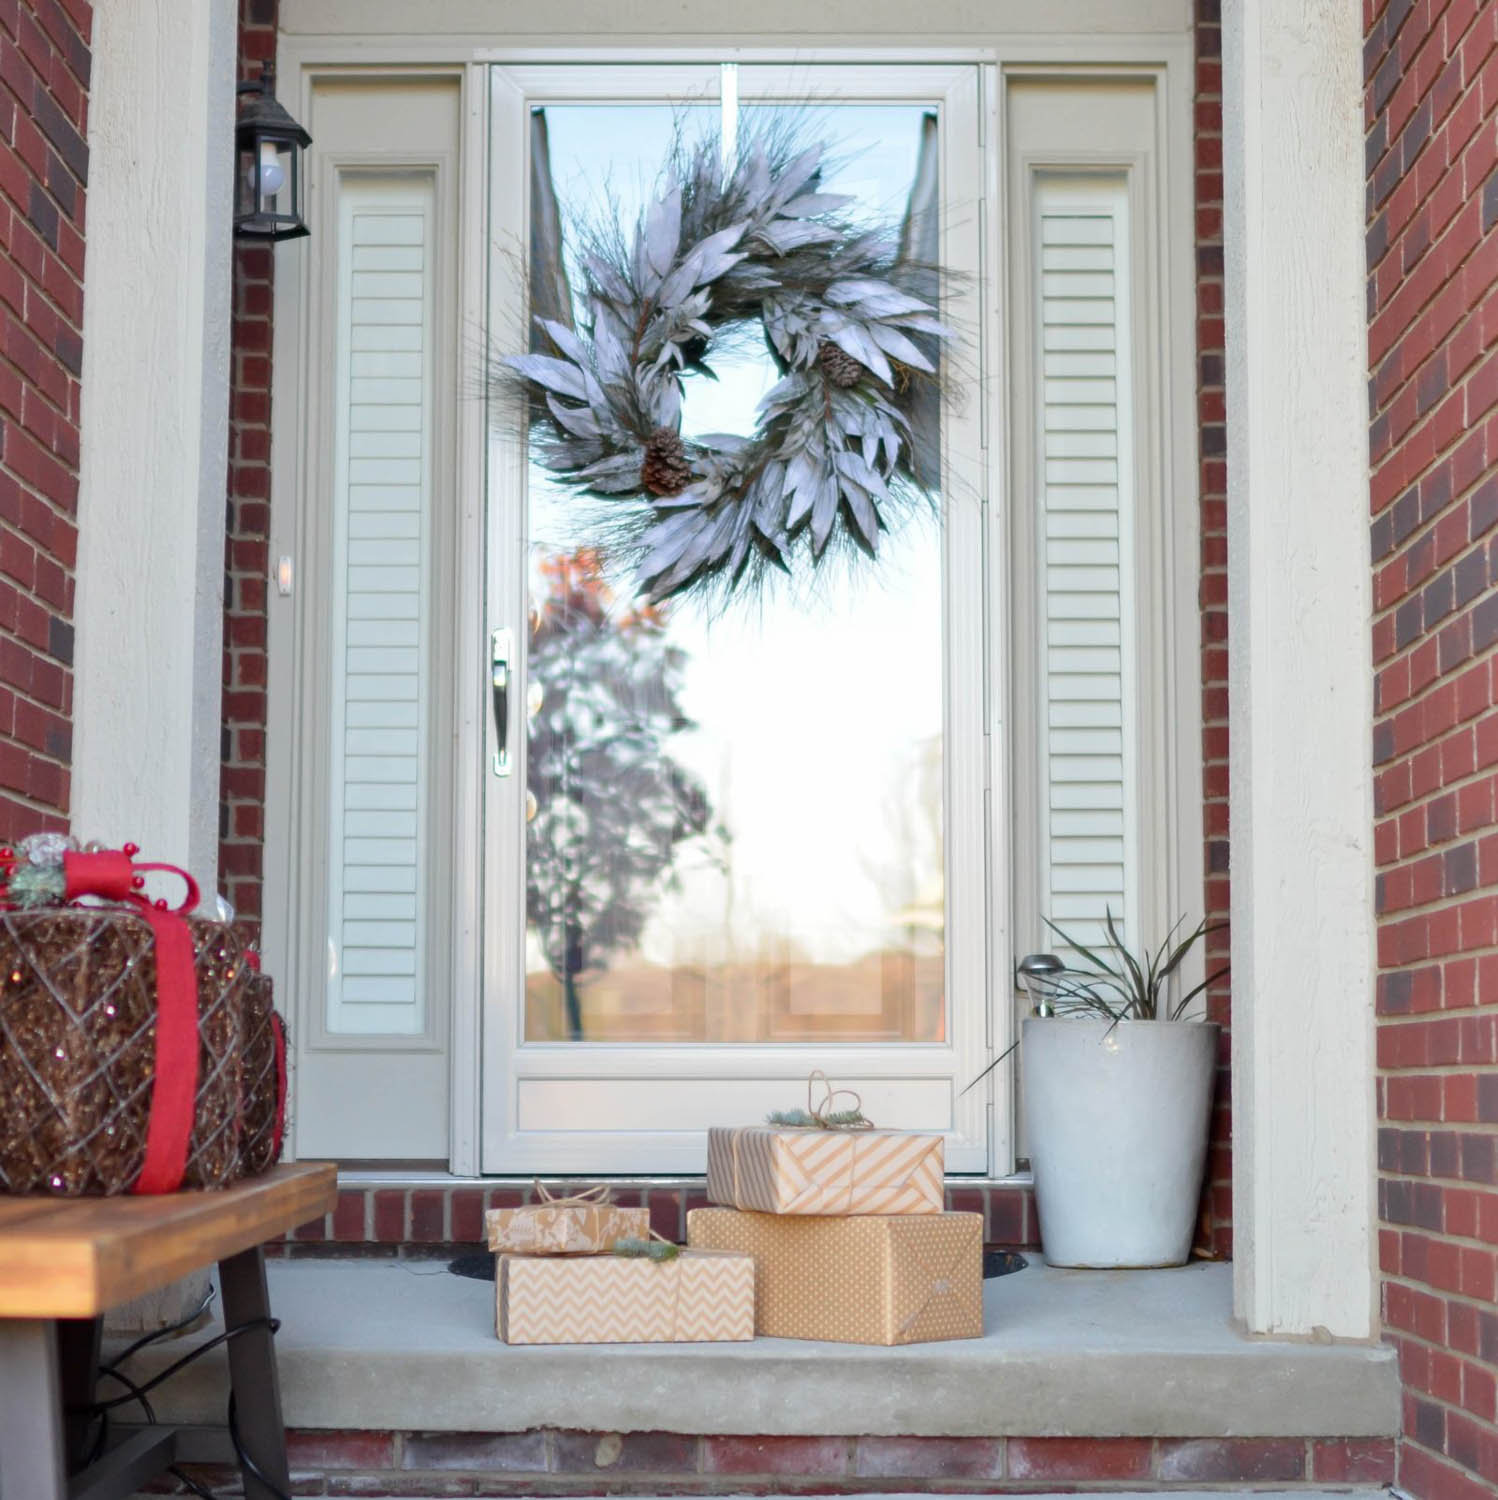 Holiday Package Theft is on the rise in South Florida - this image shows a door at a Fort Lauderdale home decorated for the holidays with packages and gifts on the doorstep